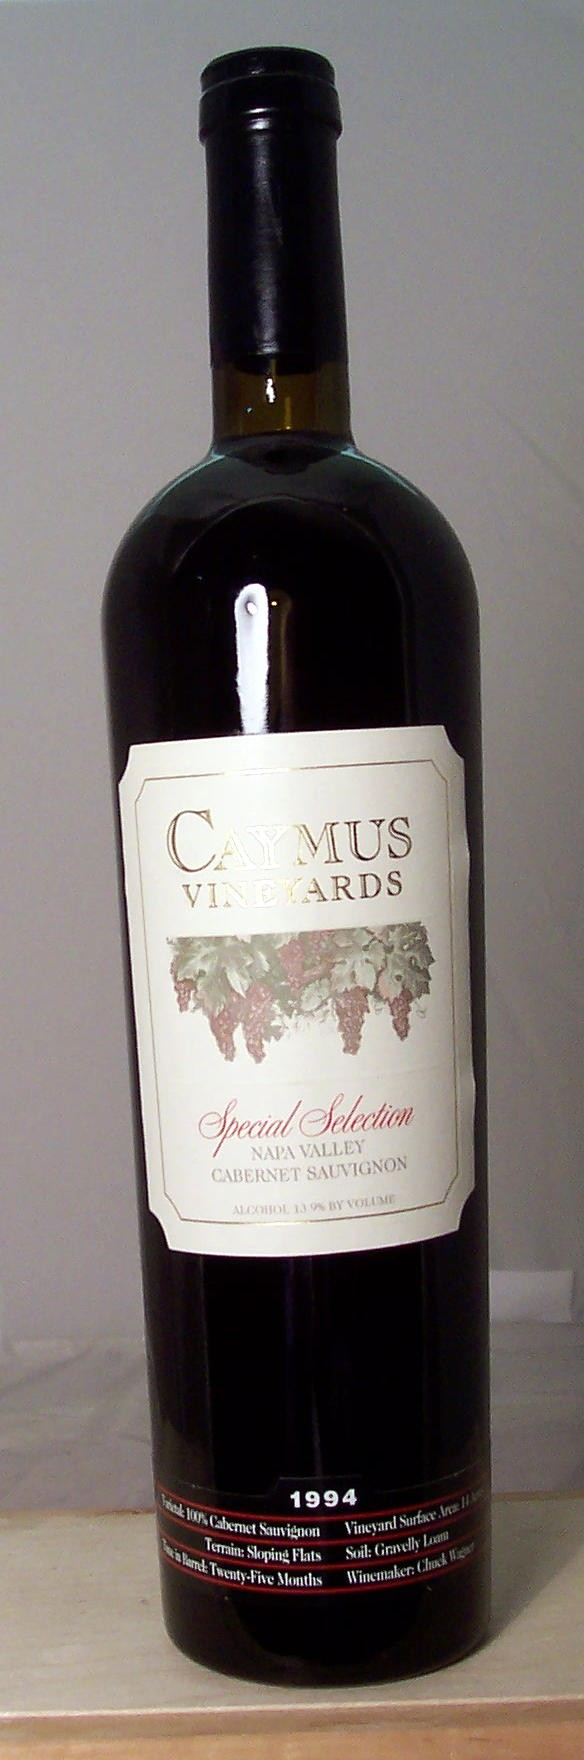 Caymus Vineyards Cabernet Sauvignon Special Selection Napa Valley 1994